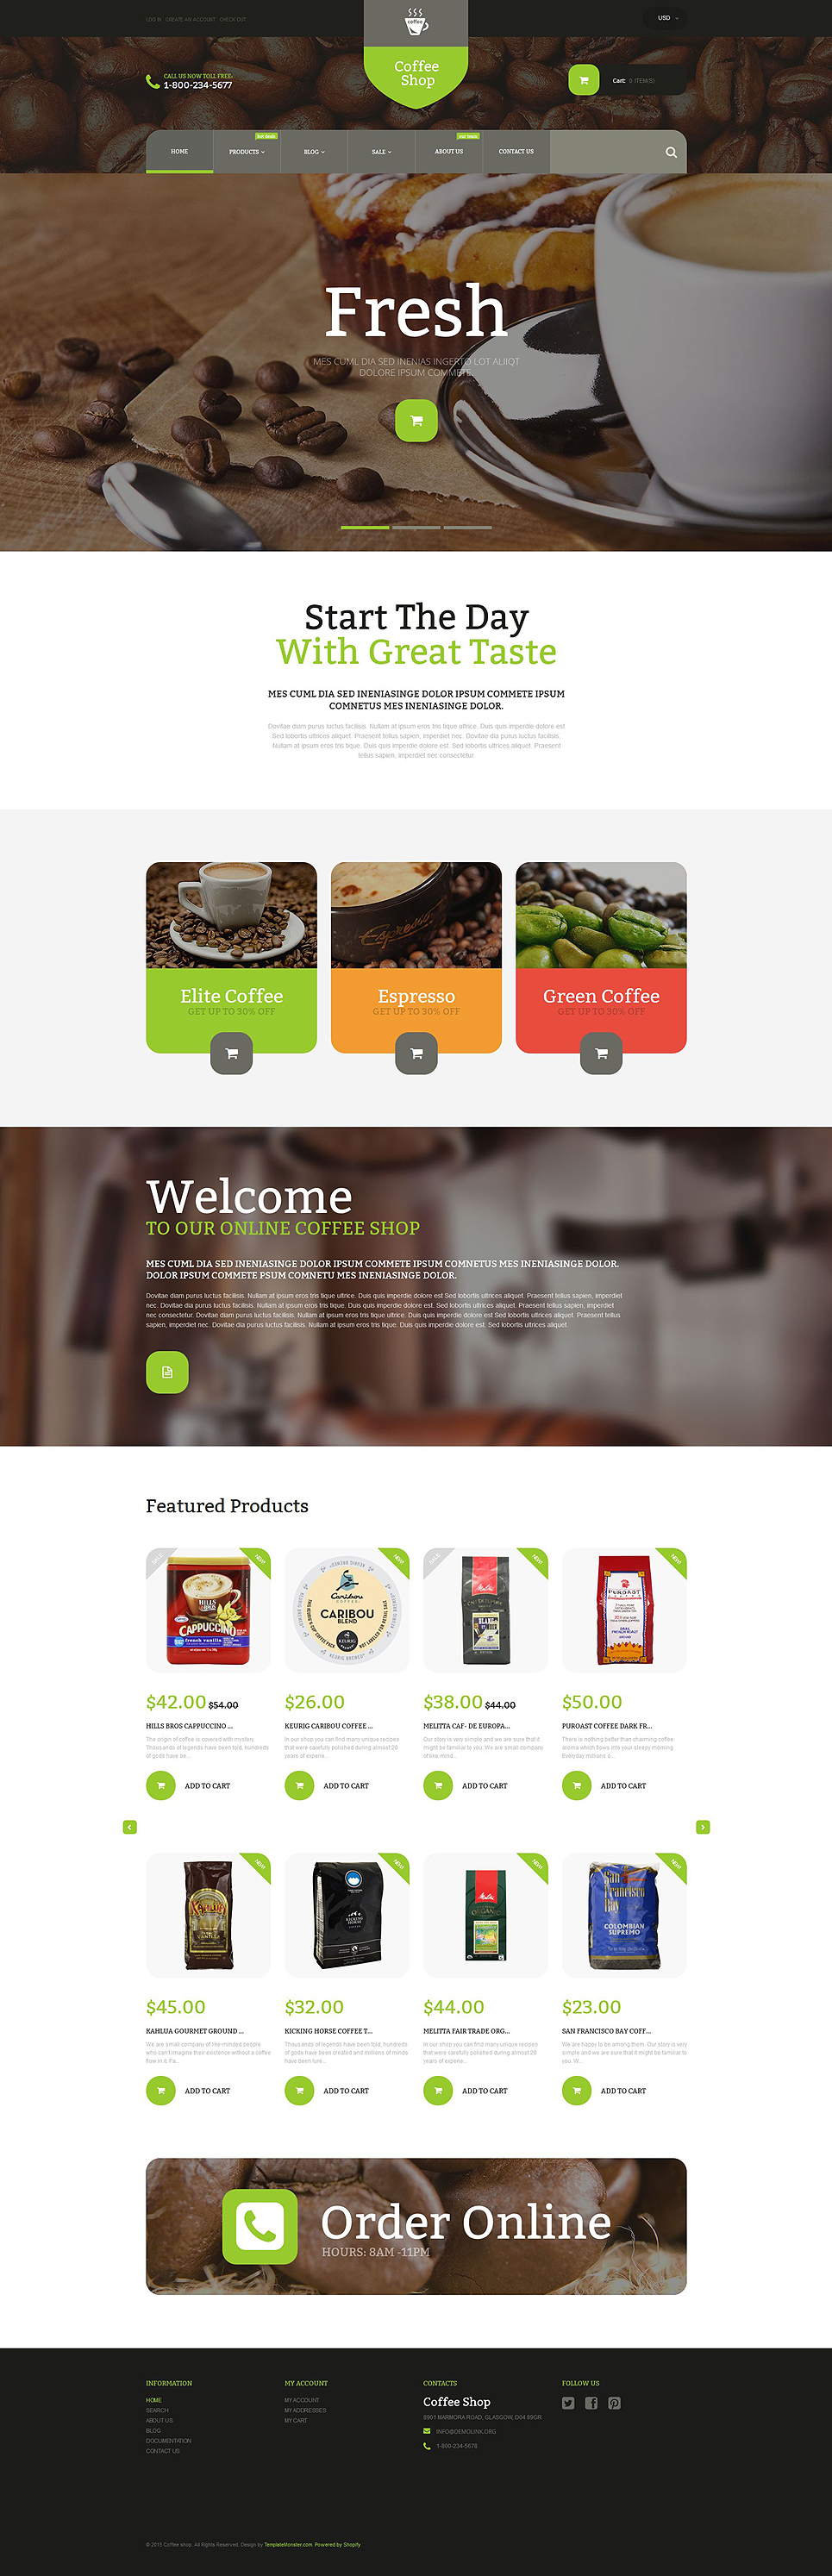 free shopify templates - coffee shop shopify theme